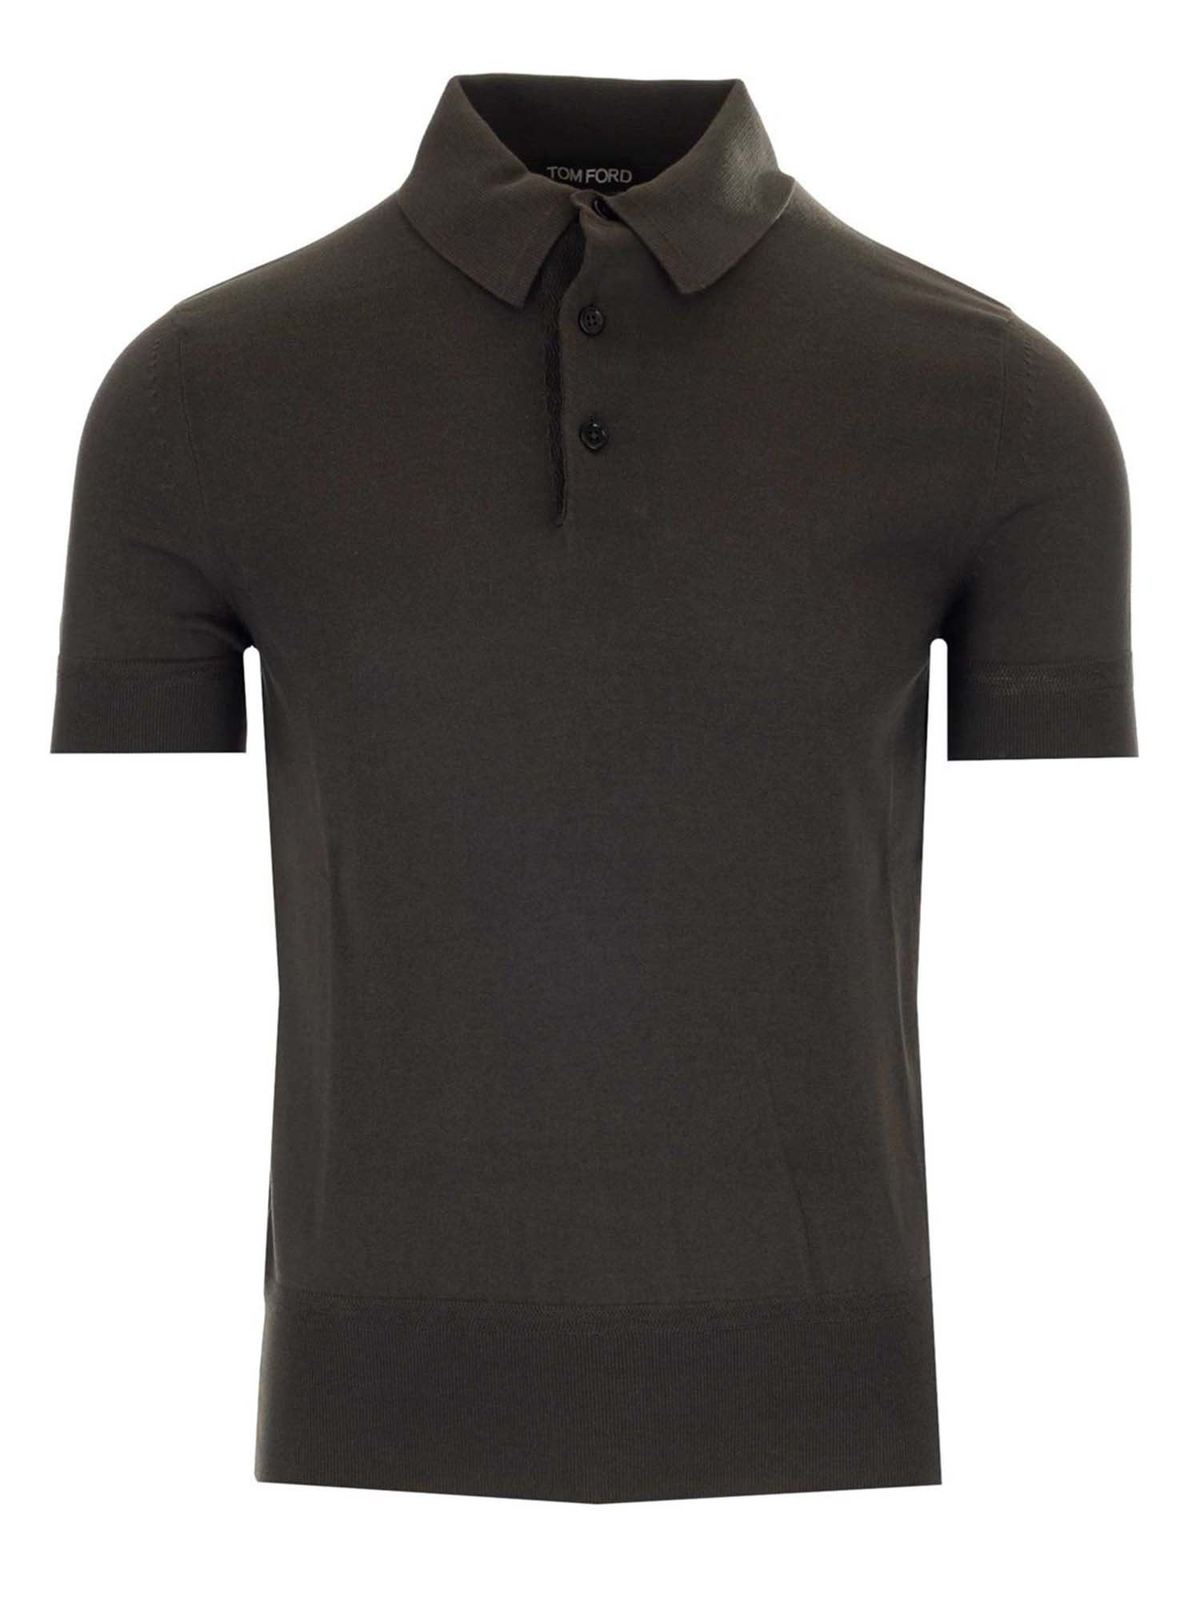 Tom Ford JERSEY POLO SHIRT IN ARMY GREEN